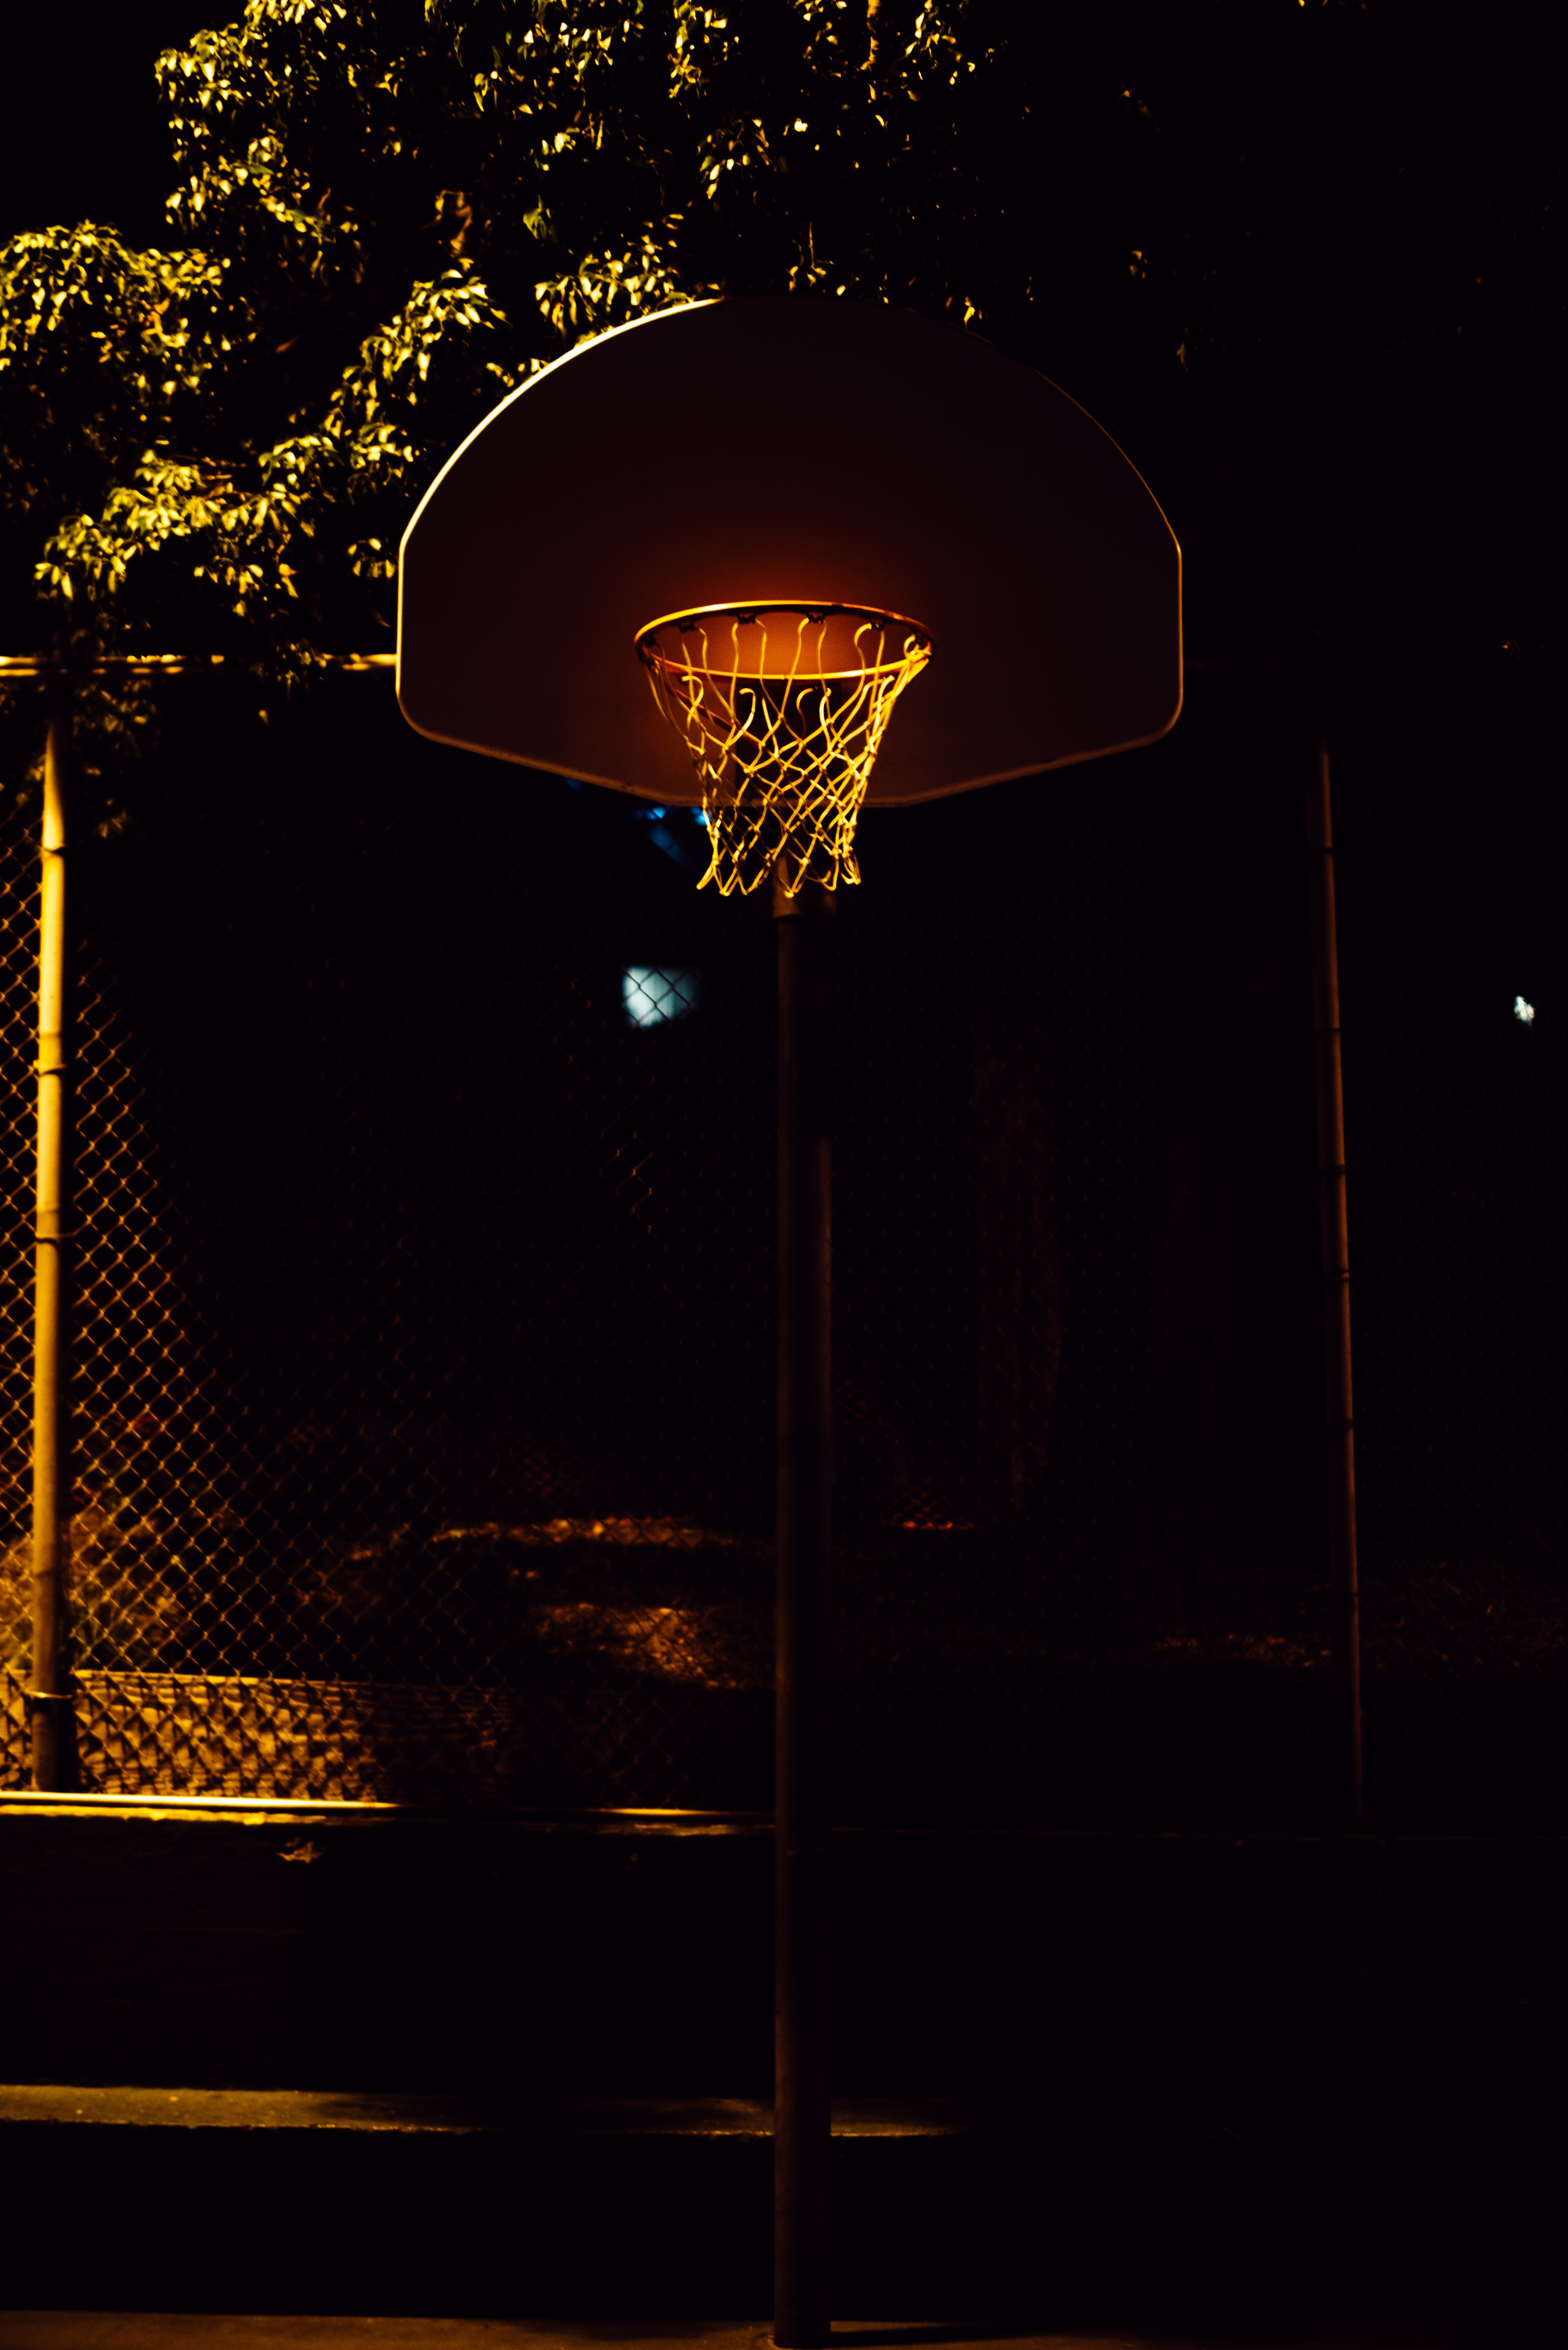 73297 Screensavers and Wallpapers Basketball for phone. Download Sports, Basketball, Basketball Hoop, Basketball Ring, Basketball Net, Basketball Grid, Shadows, Night pictures for free